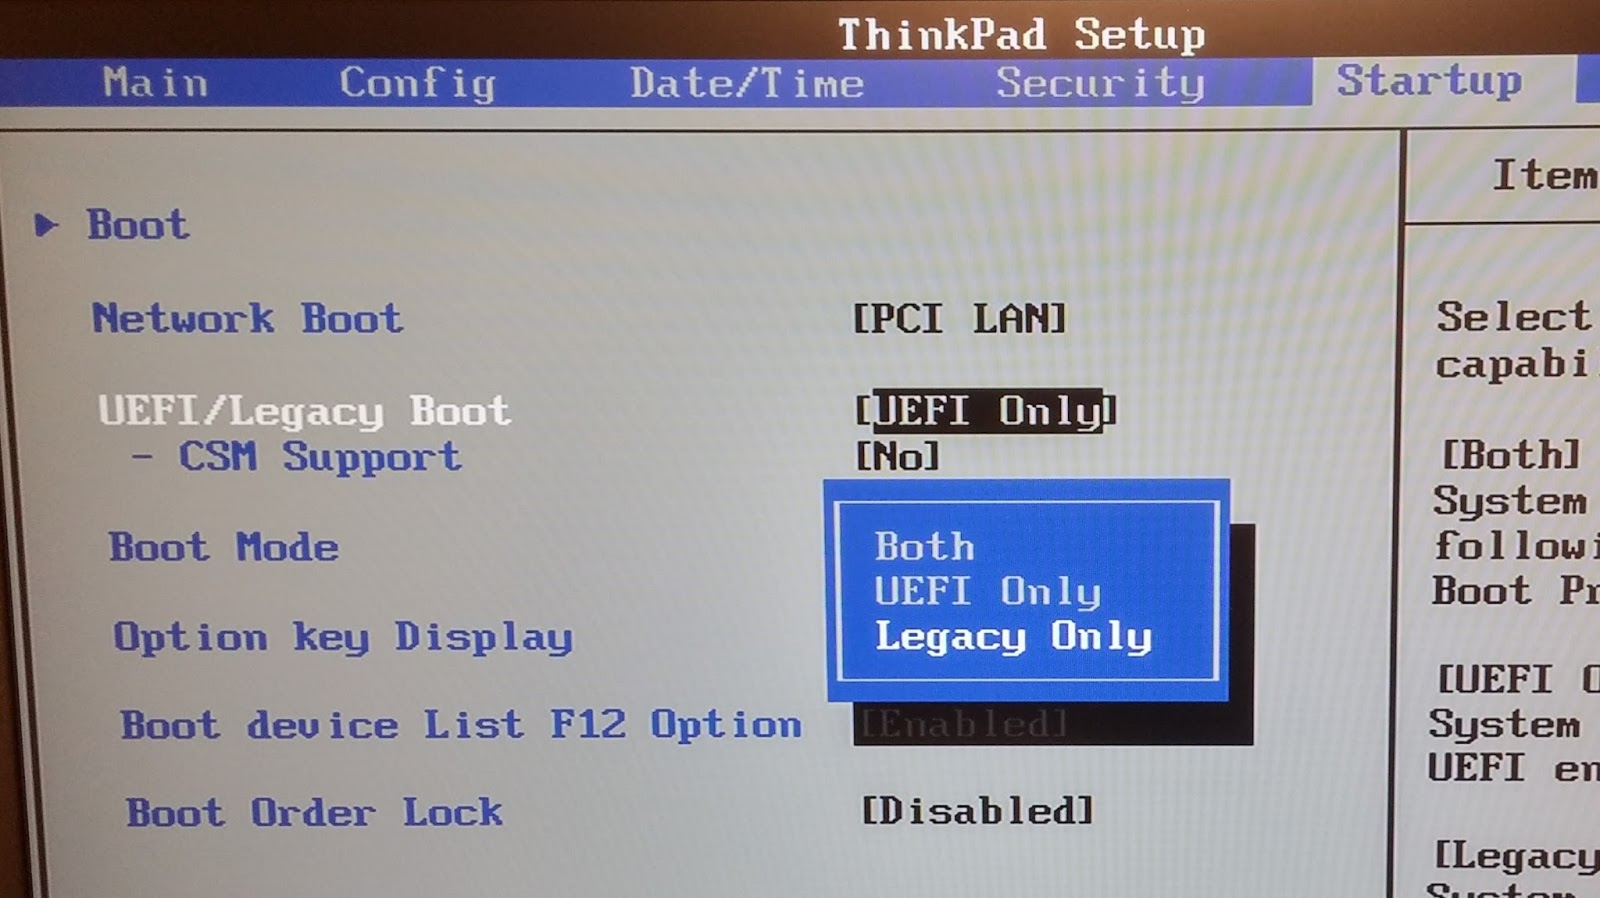 How to configure your BIOS to allow for PXE network or USB